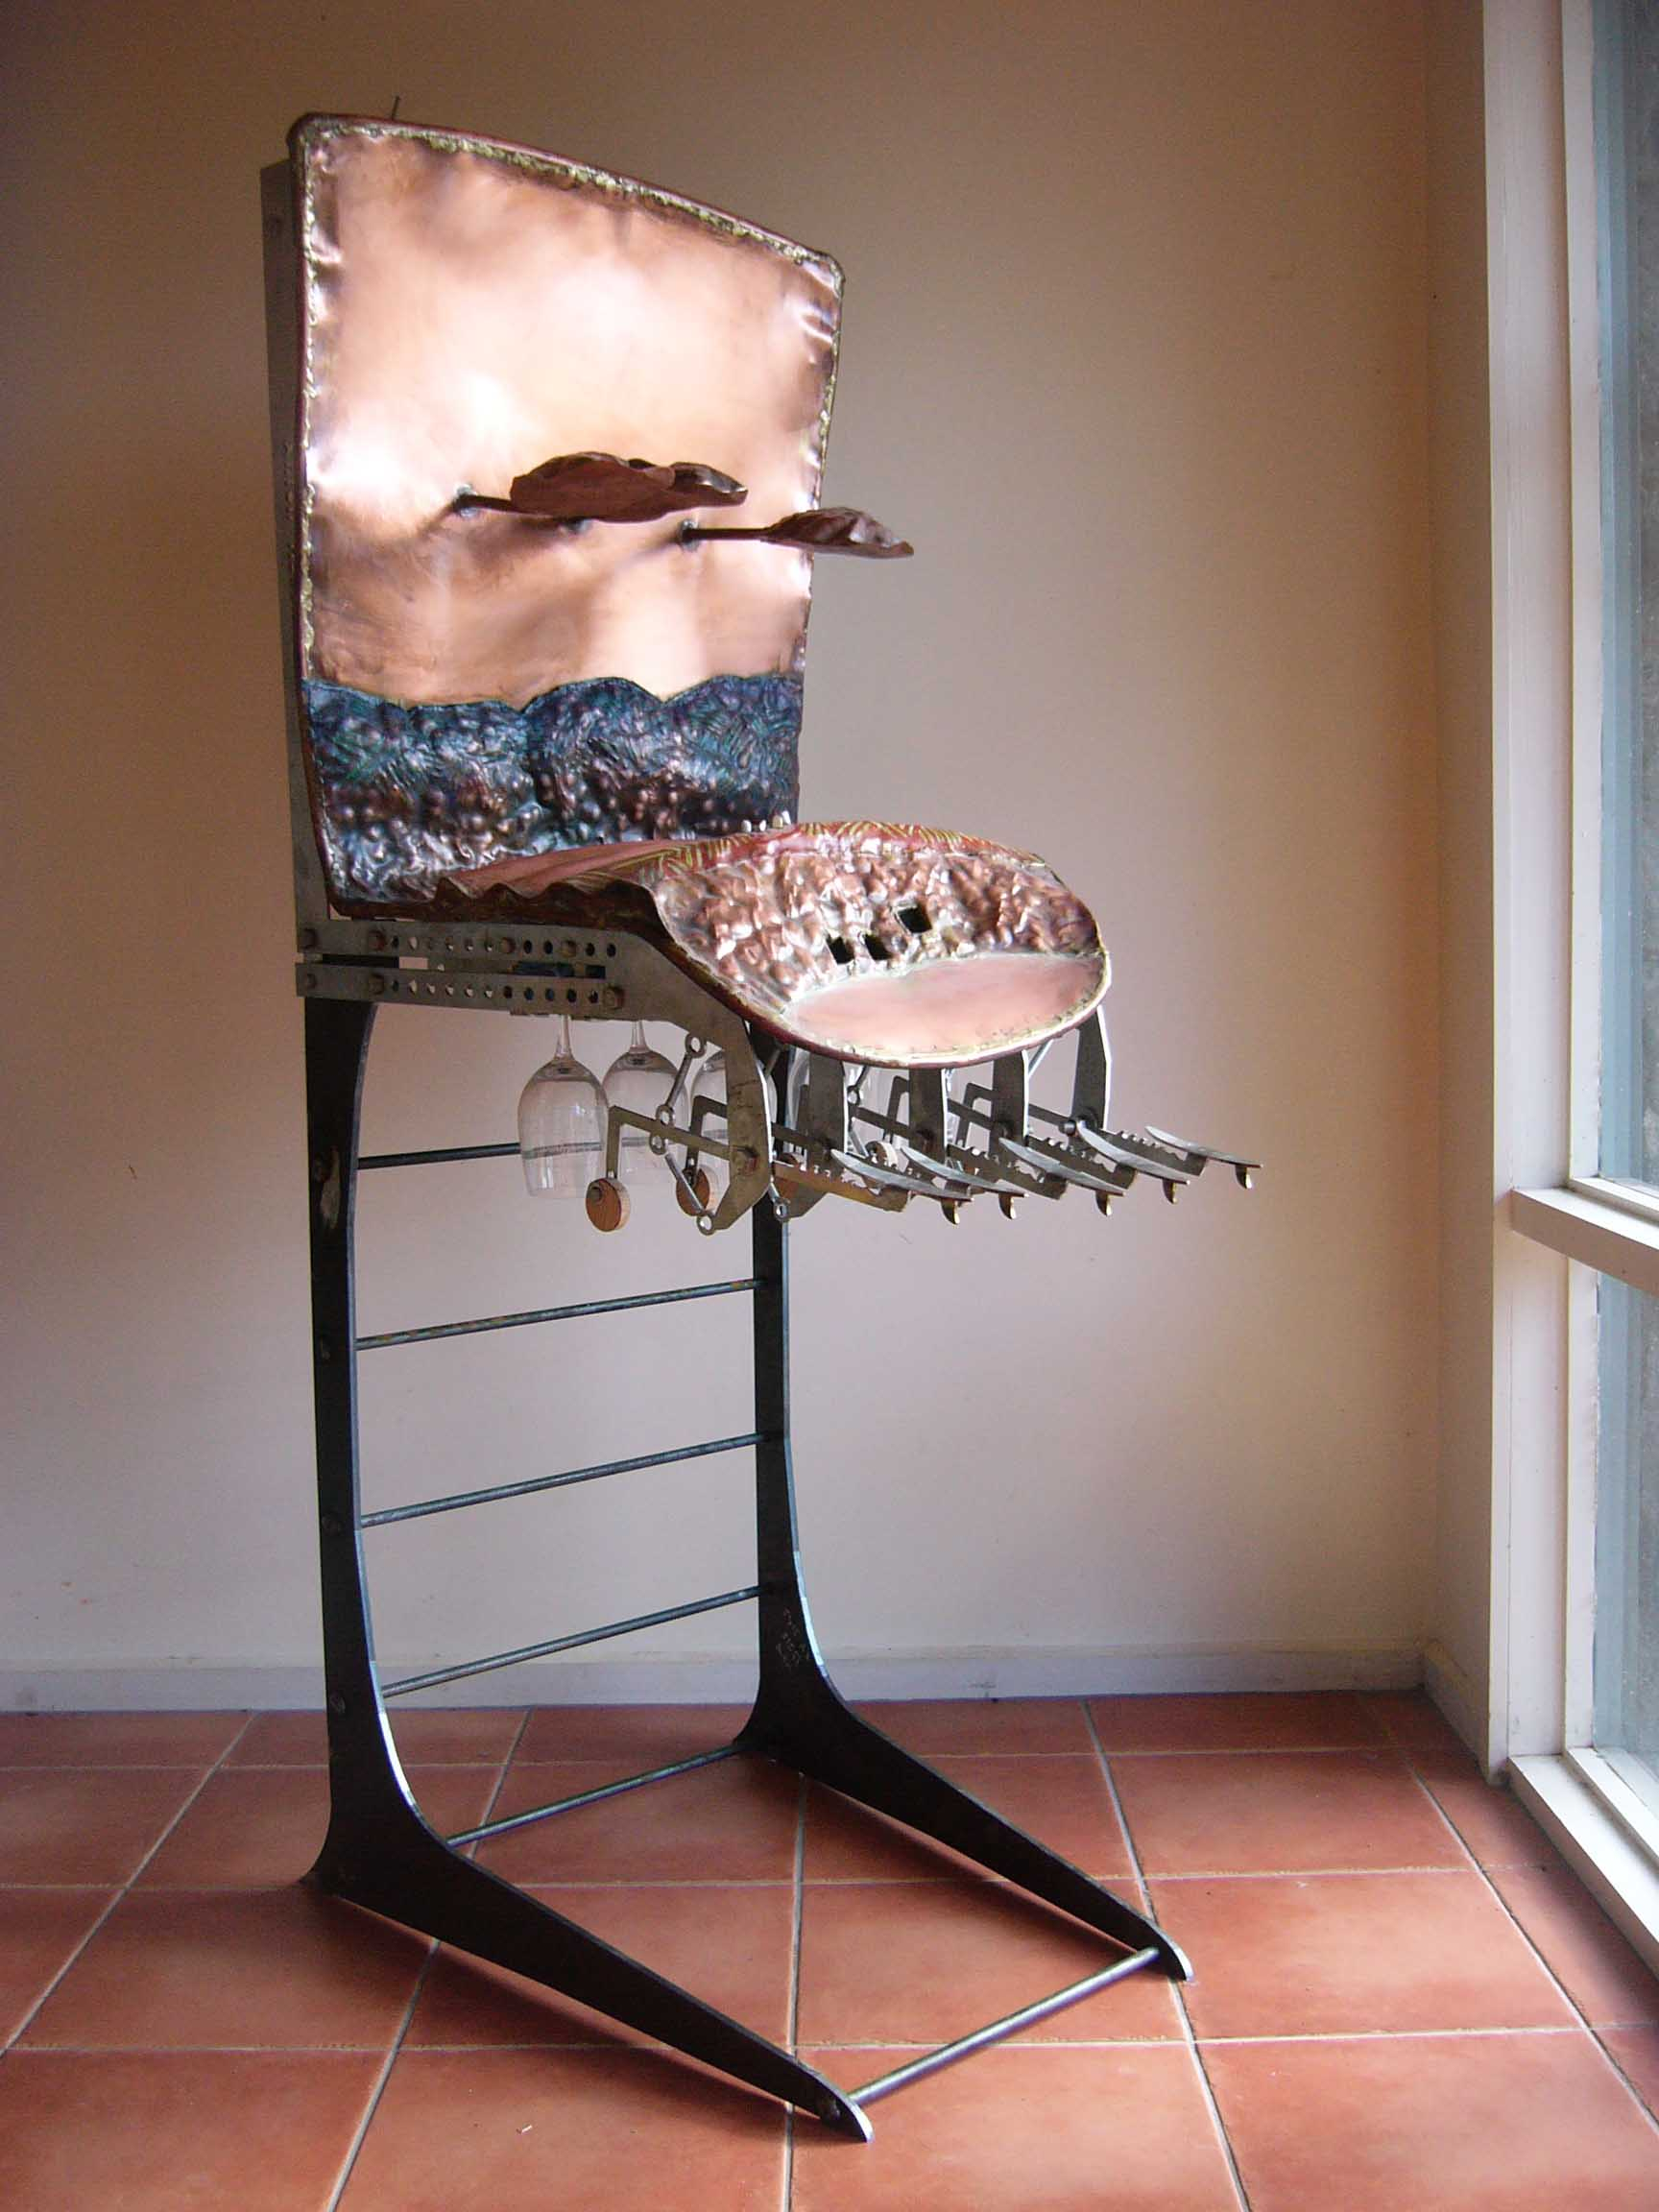 Hasell 'Wine glass chime' 2003